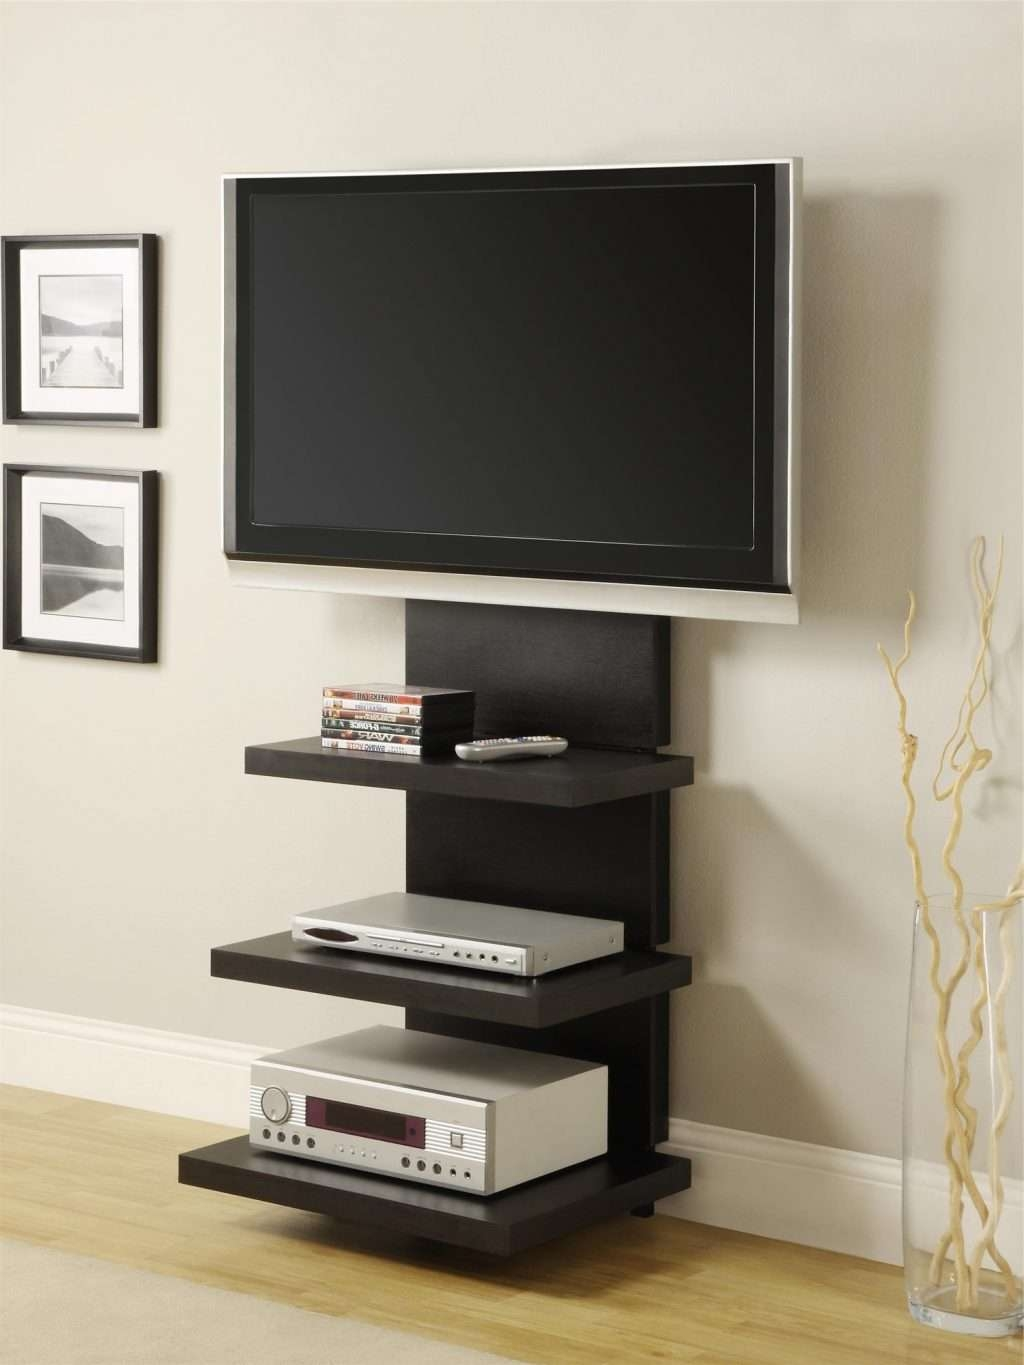 Remarkable Space Saving Tv Stand Room Ideas For Small Spaces Regarding Tv Stands For Small Spaces (View 9 of 15)